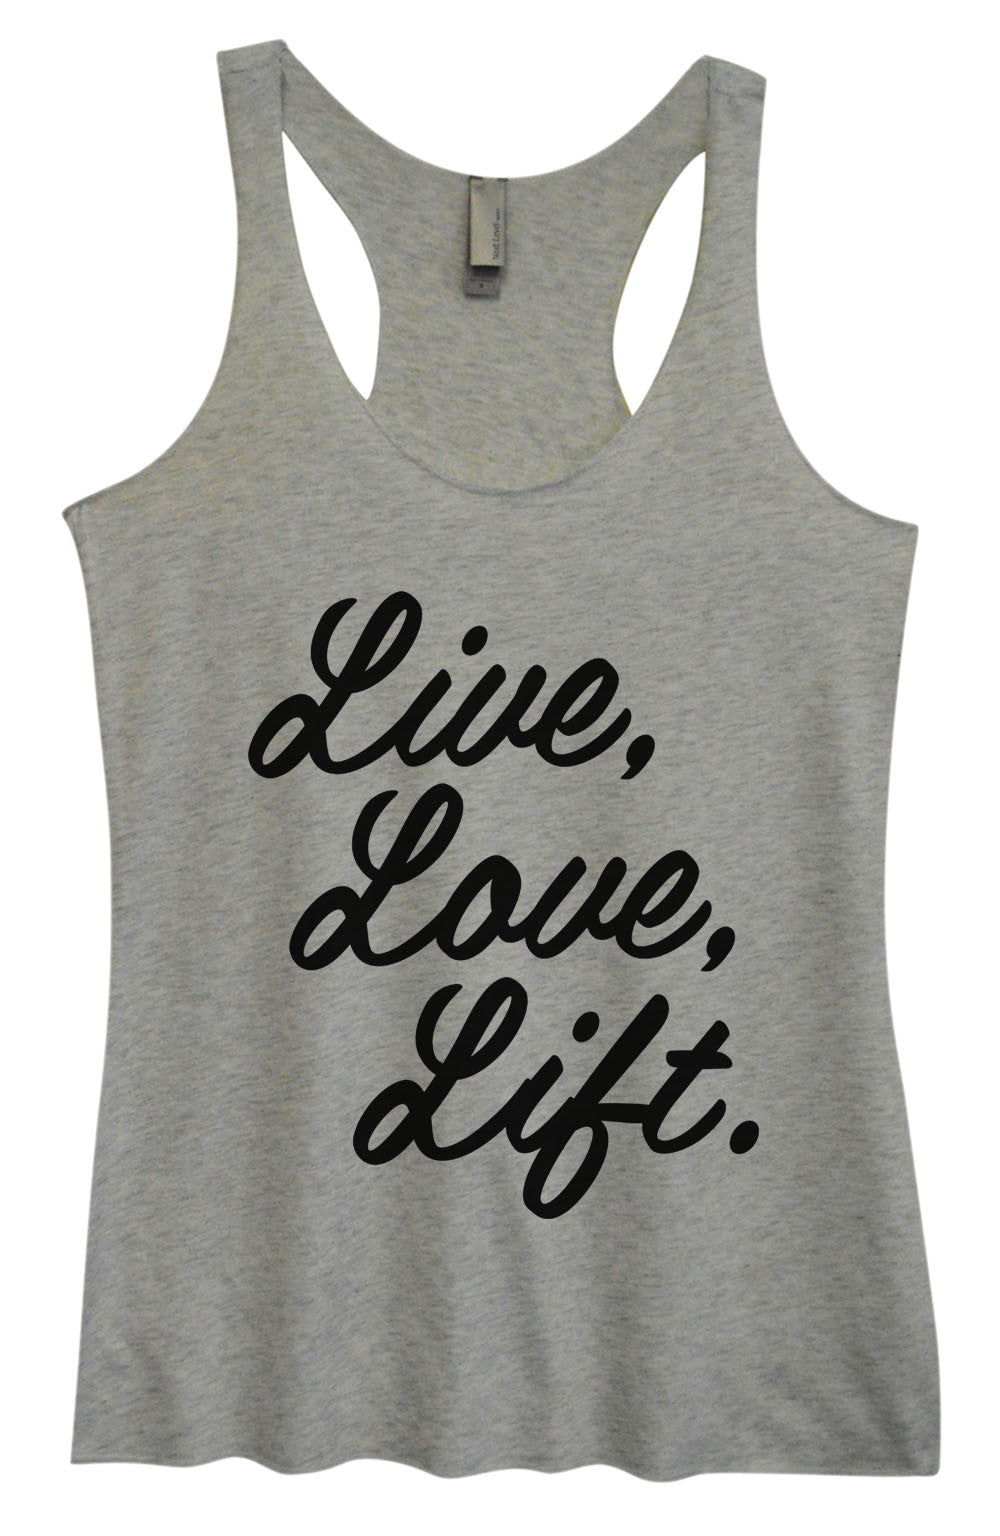 Womens Fashion Triblend Tank Top - Live, Love, Life. - Tri-1456 - Funny Shirts Tank Tops Burnouts and Triblends  - 2